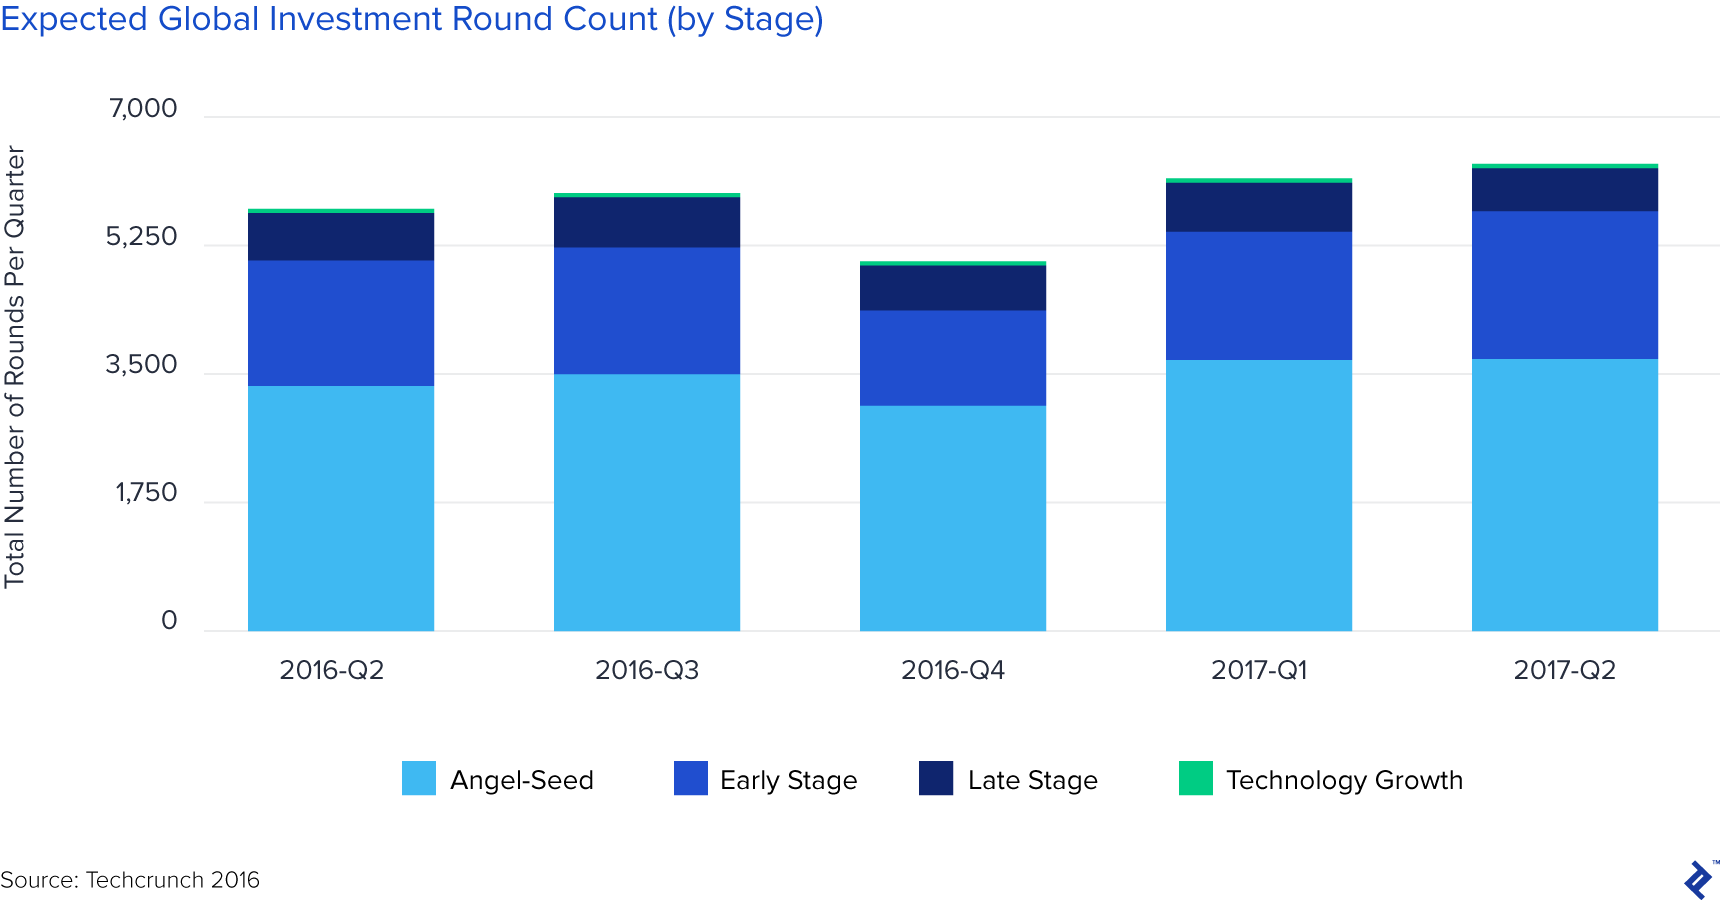 chart showing expected global investment round count, by stage